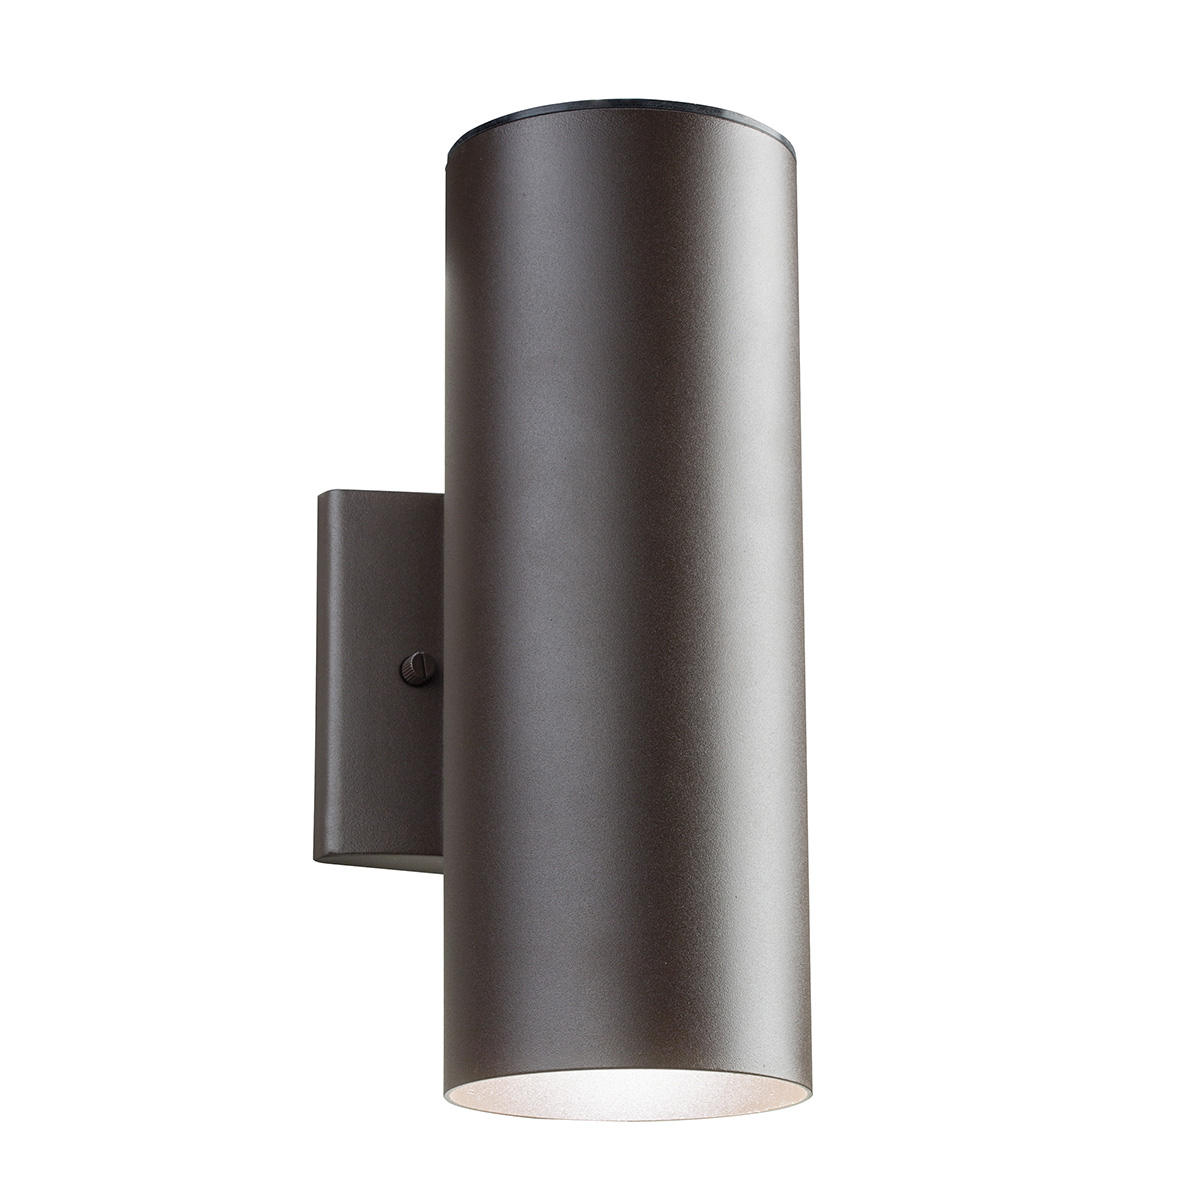 Exterior Led Light Fixtures Cylinder Led Up Downlight Wall Sconce By Kichler 11251azt30